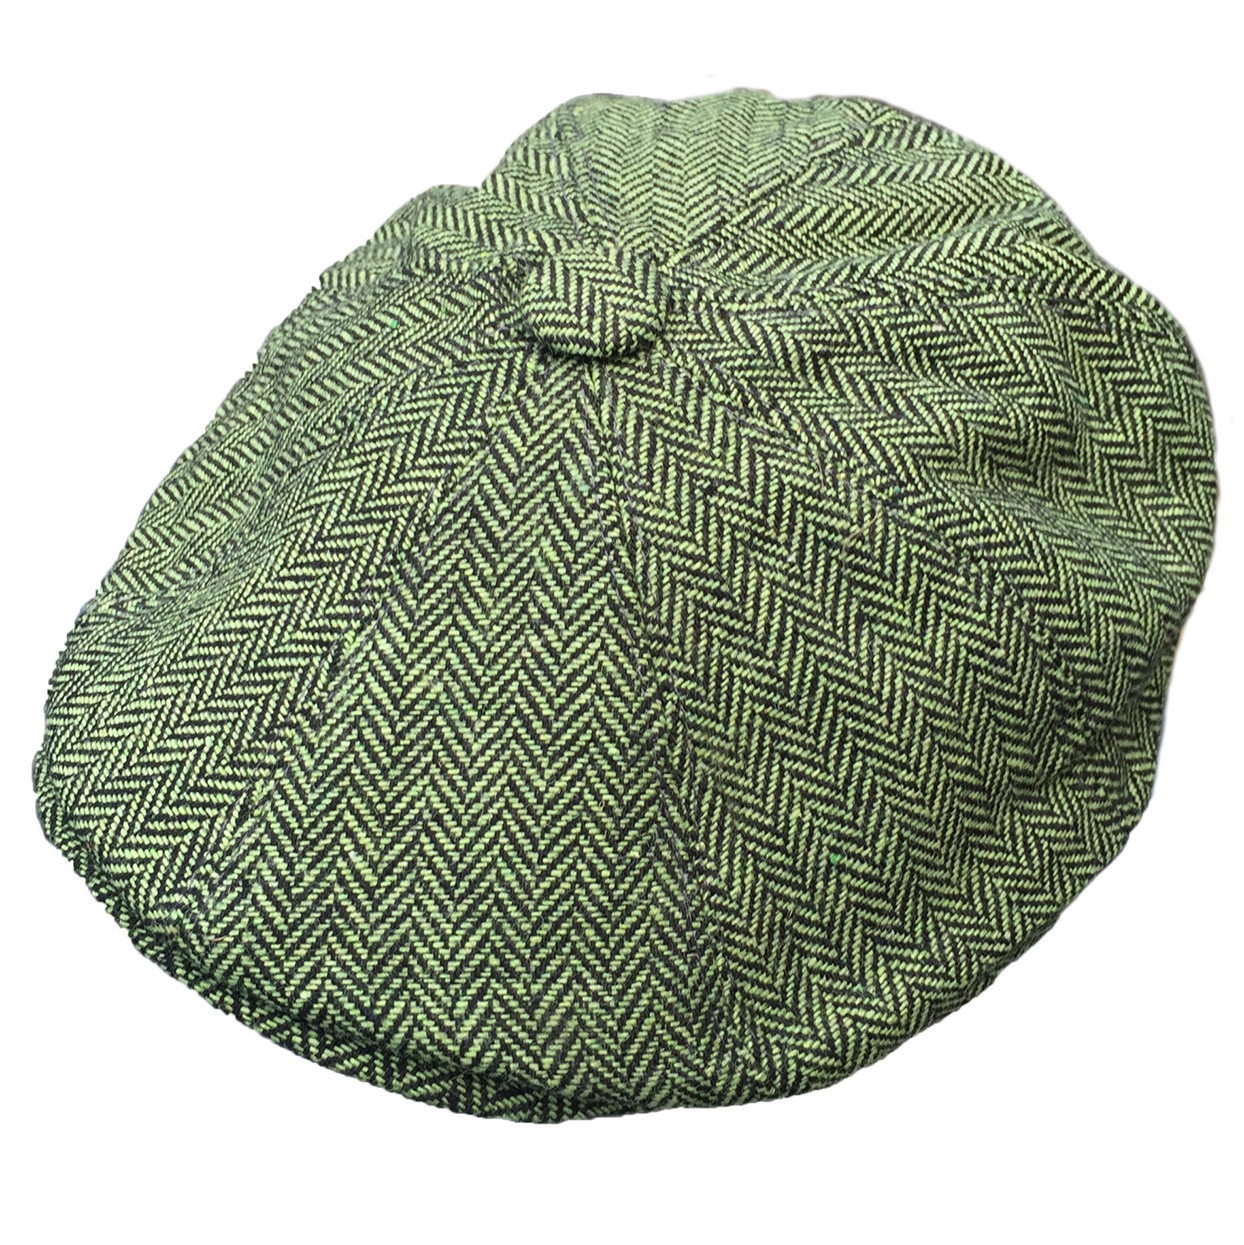 G & H Green Herringbone Newsboy Cap